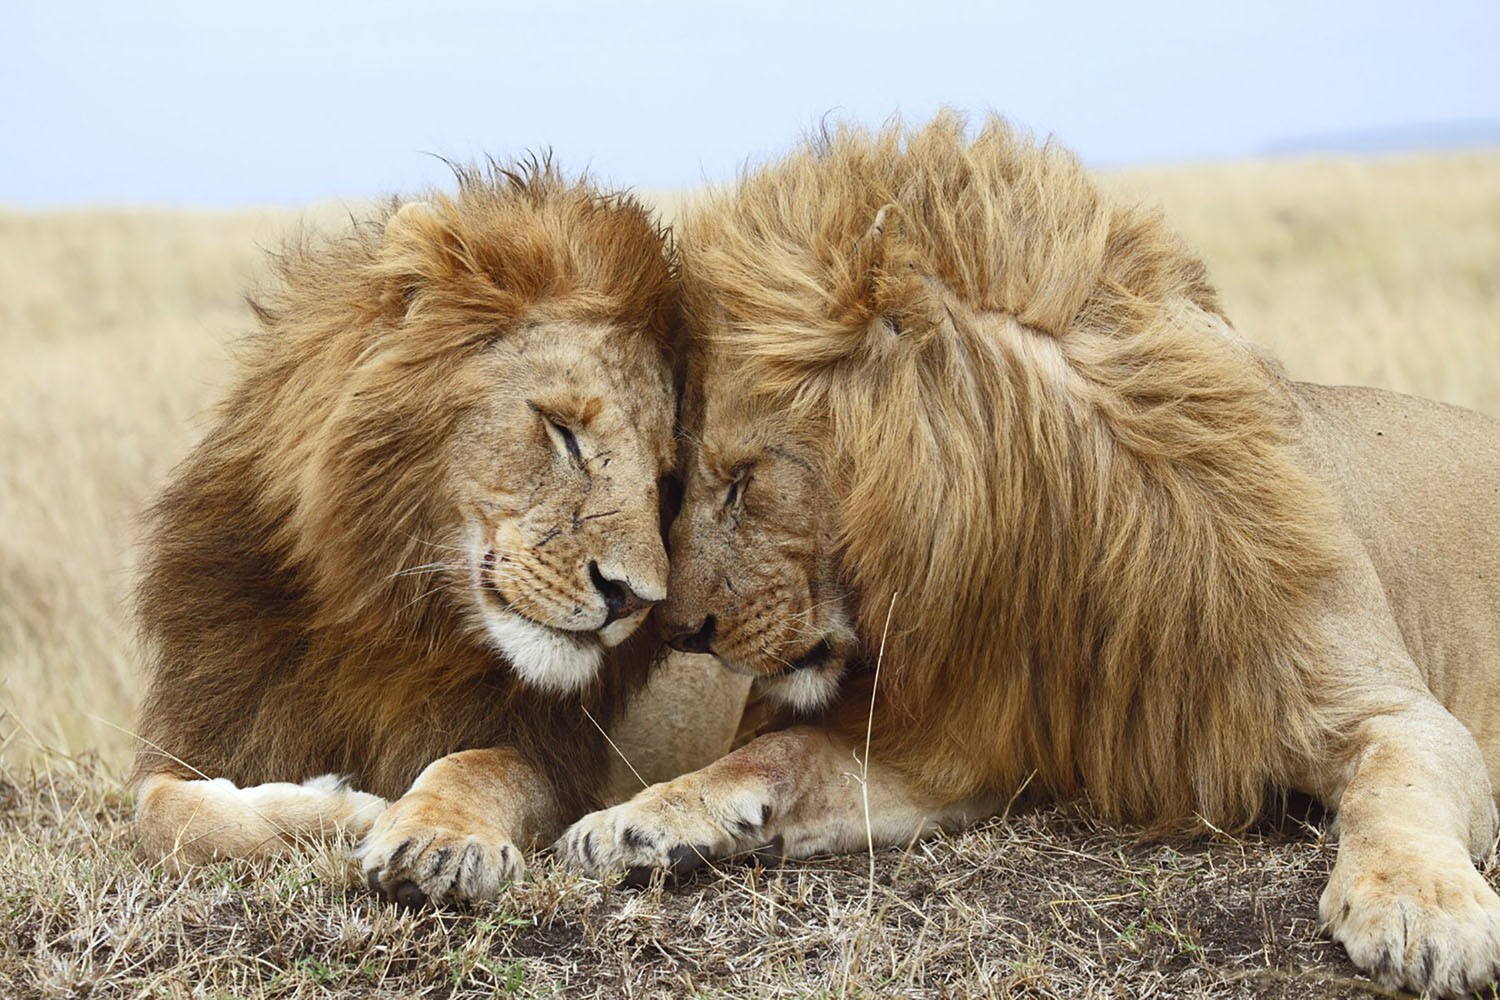 Two lions cuddle each other